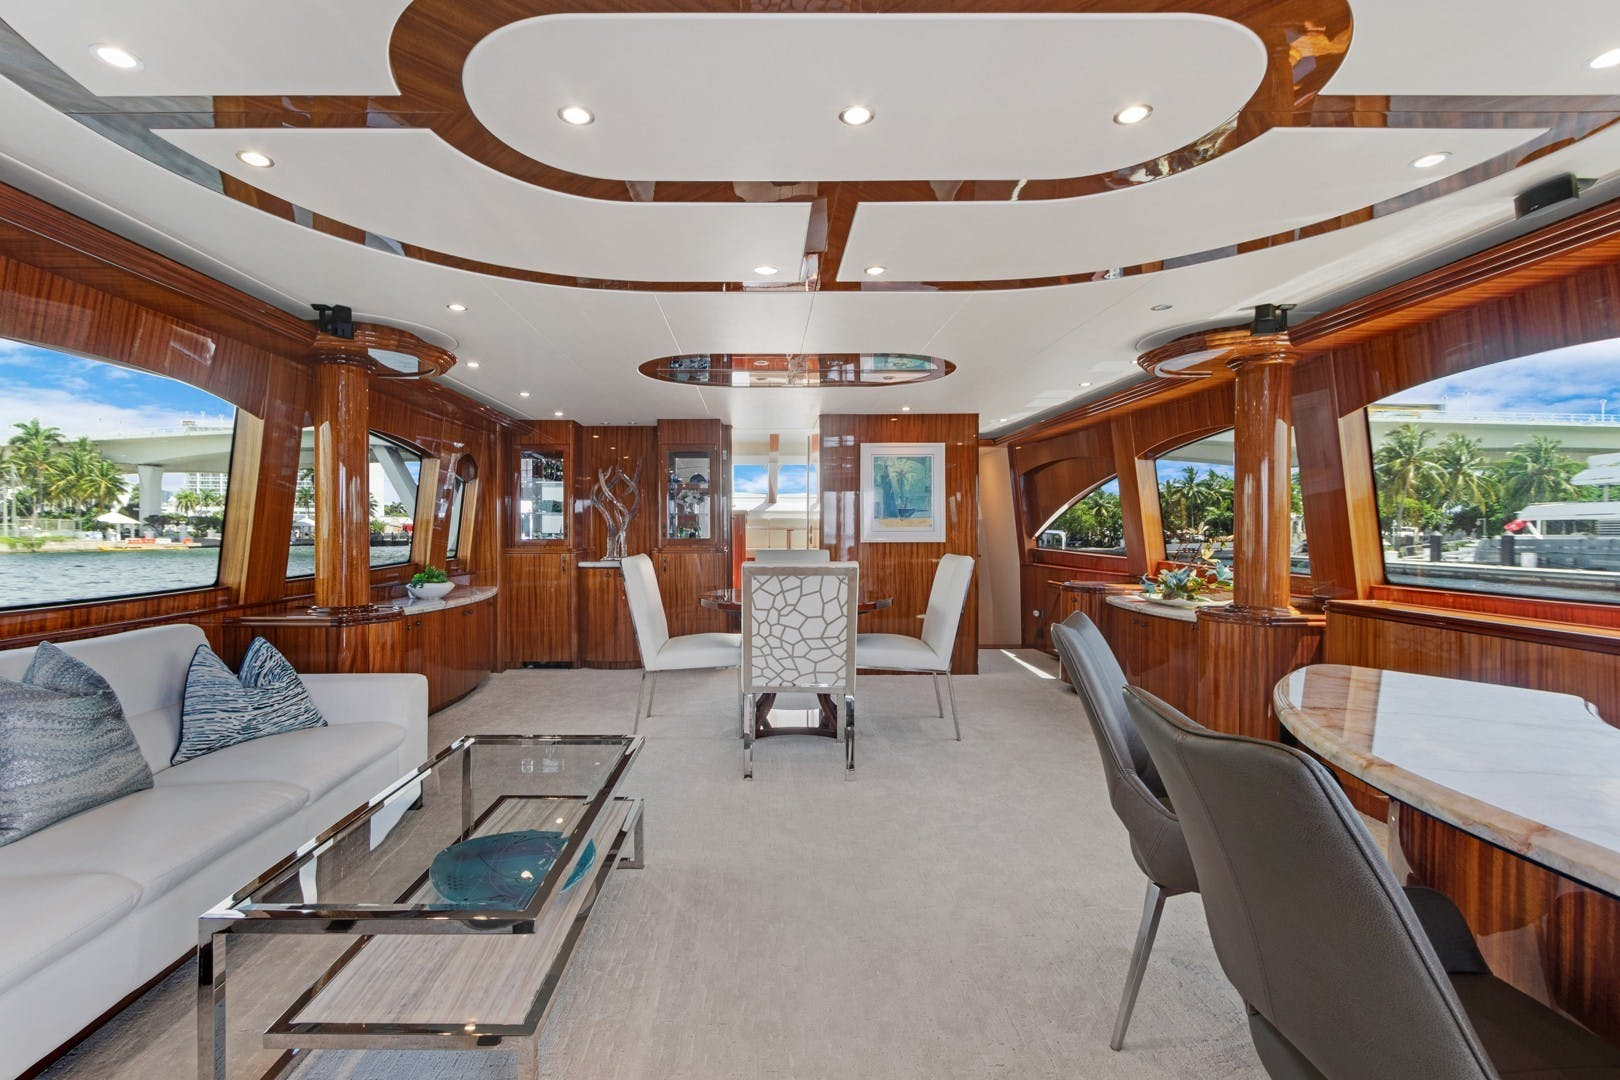 2012 Hatteras 80' Enclosed Bridge Motor Yacht OBSESSION   Picture 2 of 76